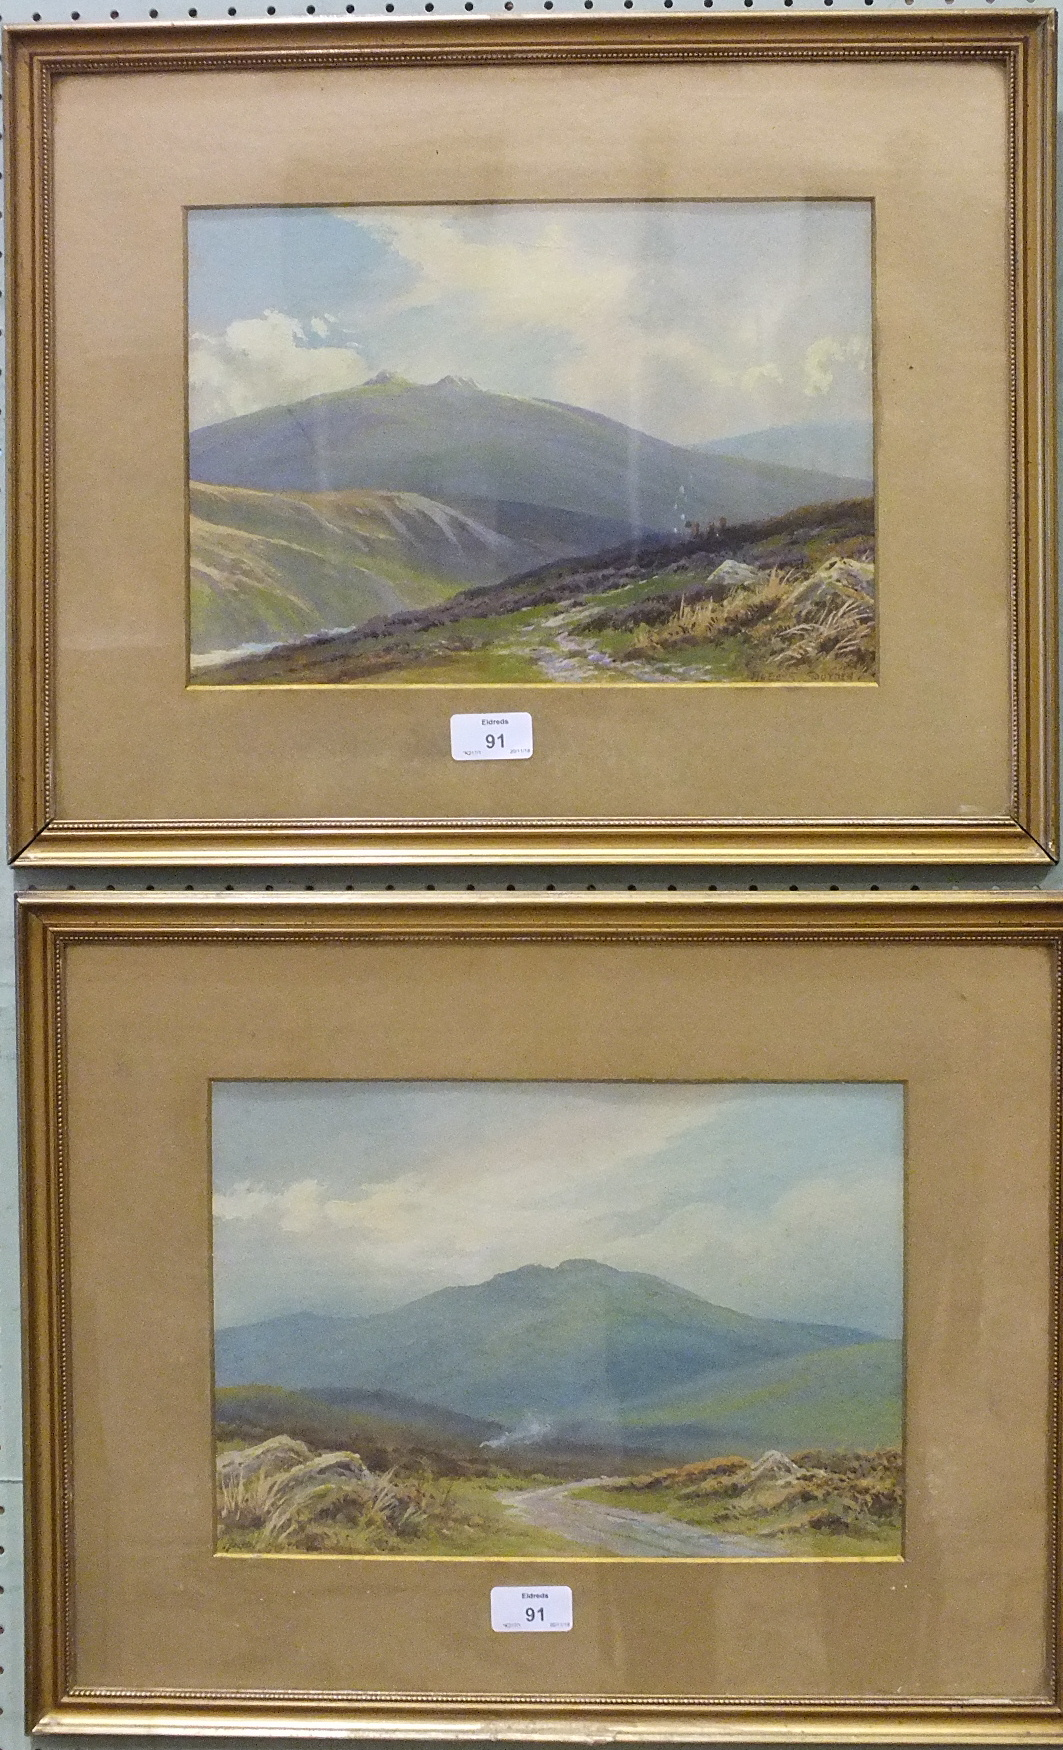 Lot 91 - Rubens Southey (1881-1933) NEAR SADDLE TOR, DARTMOOR Signed watercolour heightened with white, 22.